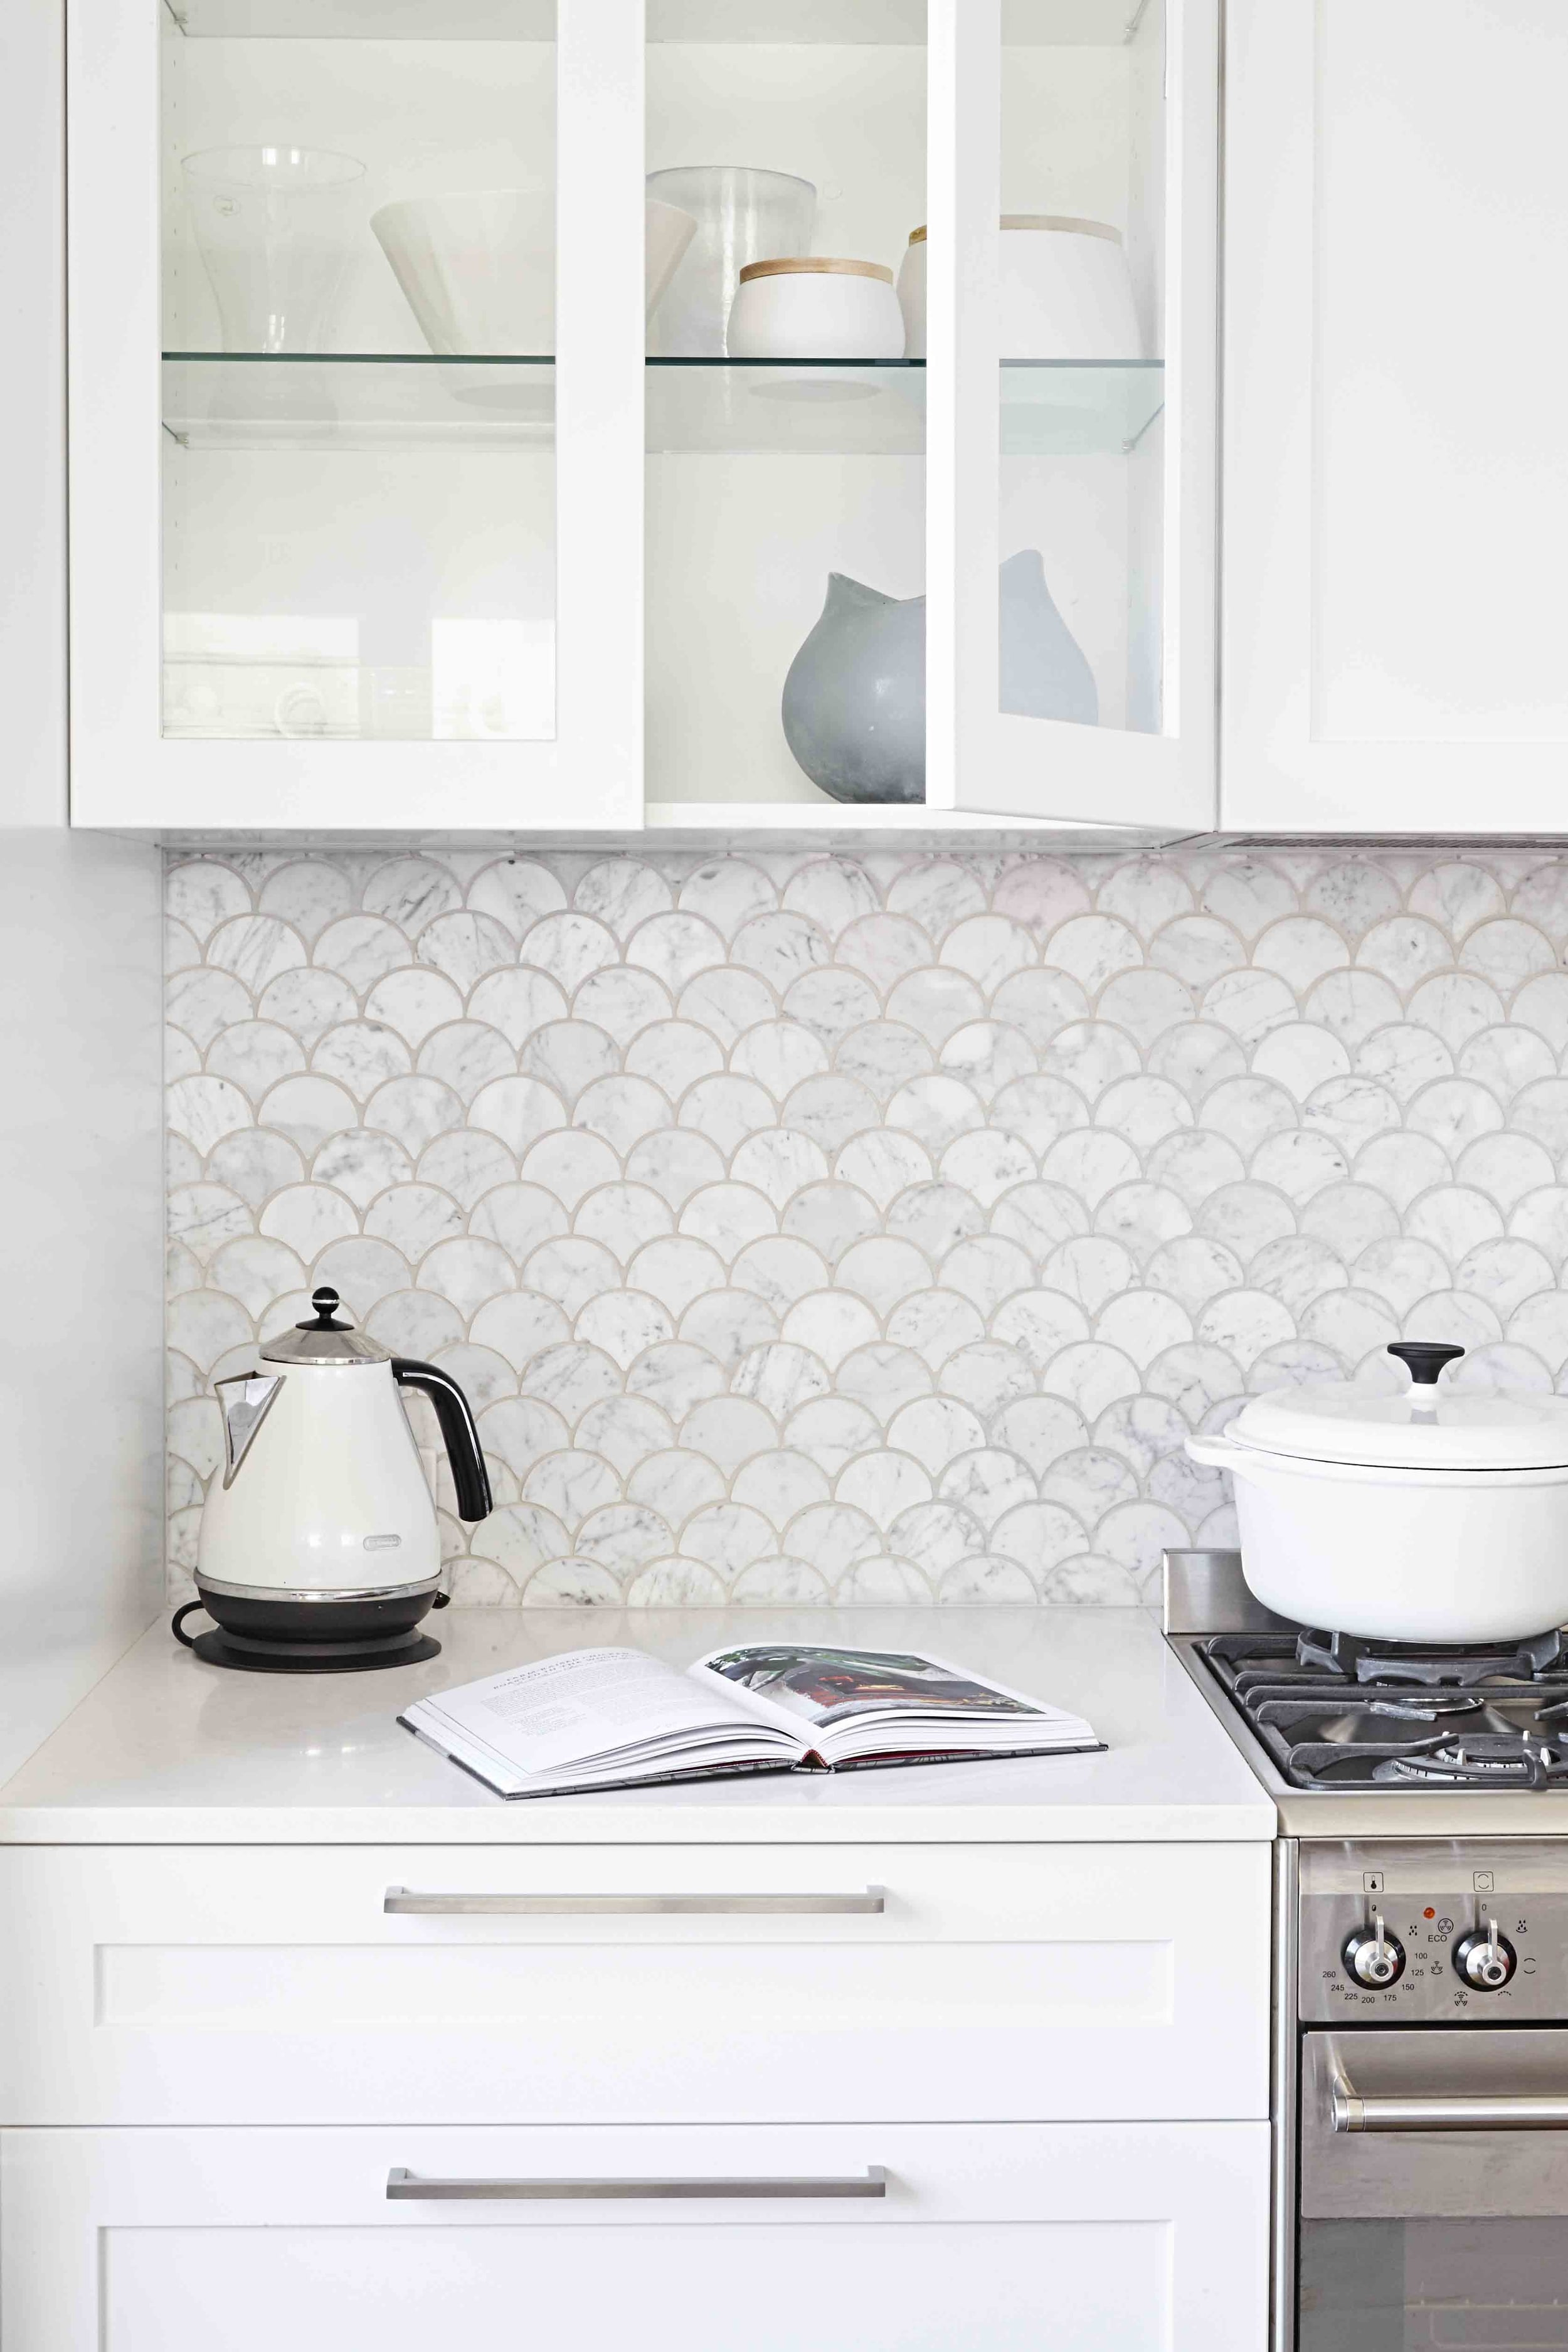 Moroccan fish scale tiles in carrara marble. Beautiful (and looks very expensive). Interior Architecture:  Sally Rhys-Jones